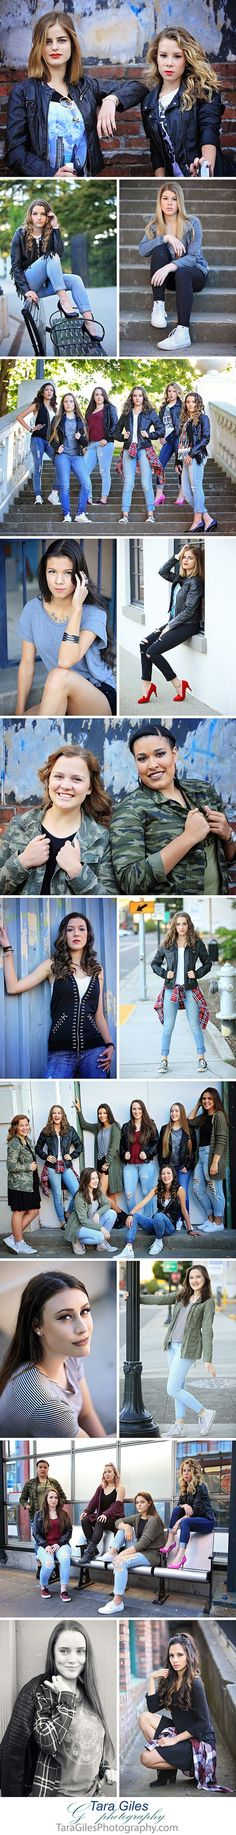 Tara Giles Photography Senior Models in downtown Tacoma for an urban style group photo shoot.